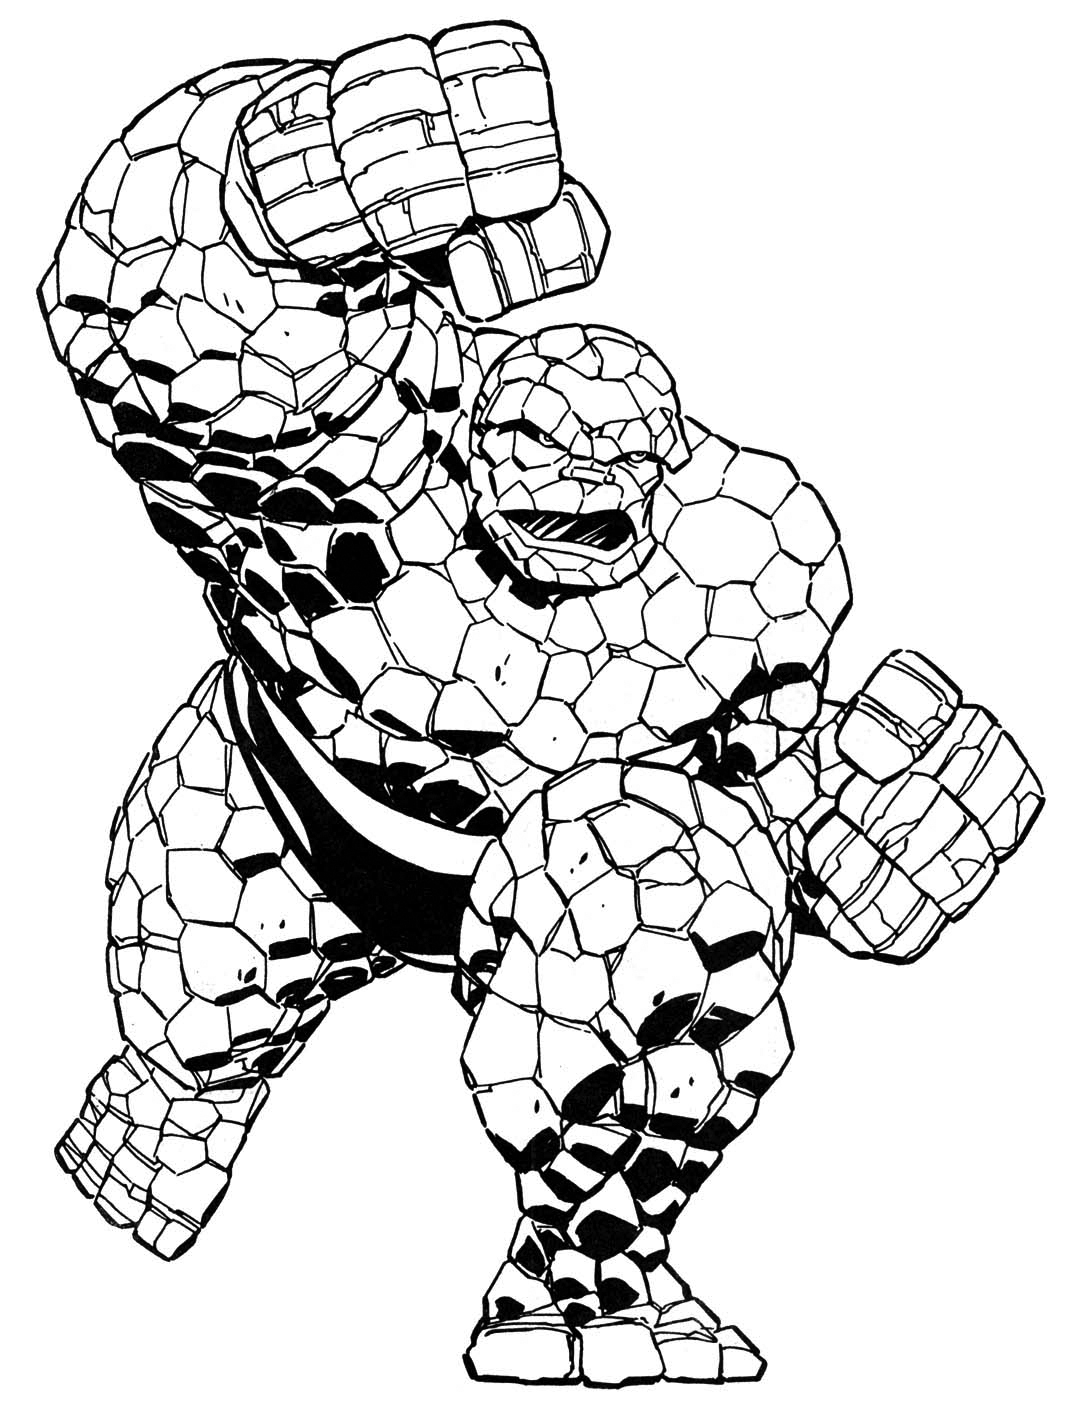 Superhero Coloring Pages - Best Coloring Pages For Kids dedans Coloriage Super Hero